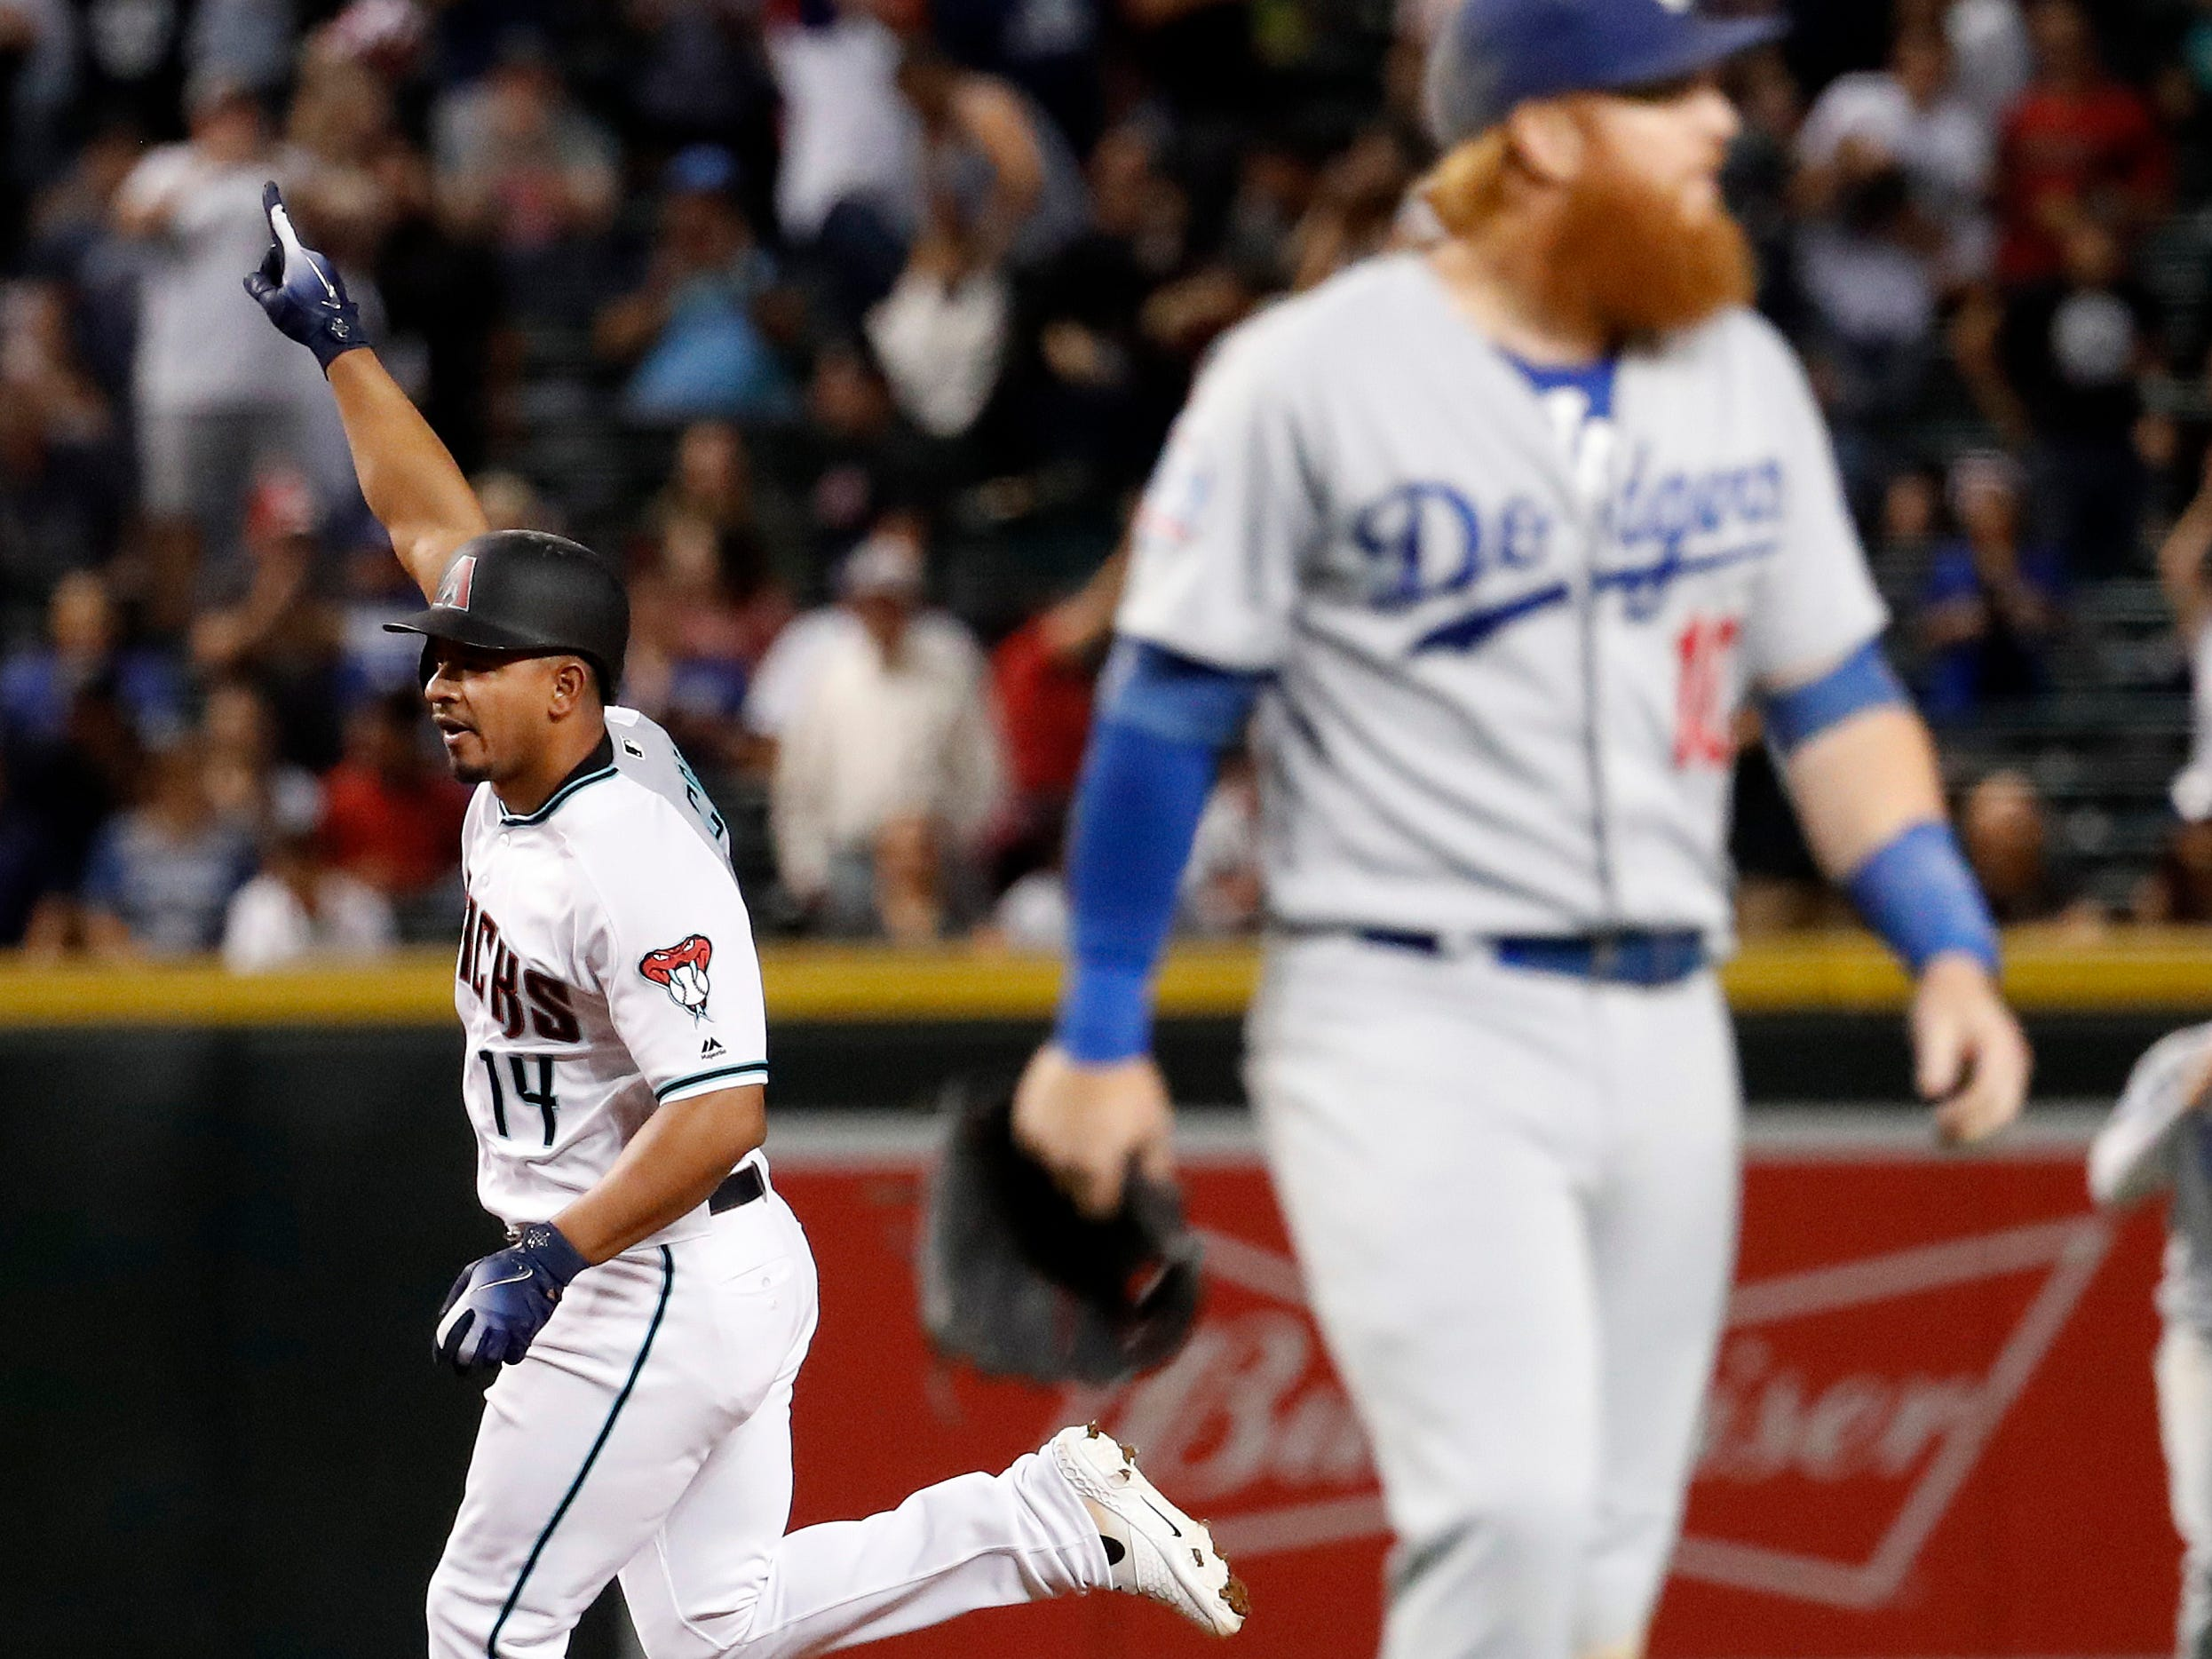 Arizona Diamondbacks' Eduardo Escobar (14) rounds the bases after hitting a walk-off home run as Los Angeles Dodgers third baseman Justin Turner leaves the field during the ninth inning of a baseball game, Tuesday, Sept. 25, 2018, in Phoenix. The Diamondbacks won 4-3.